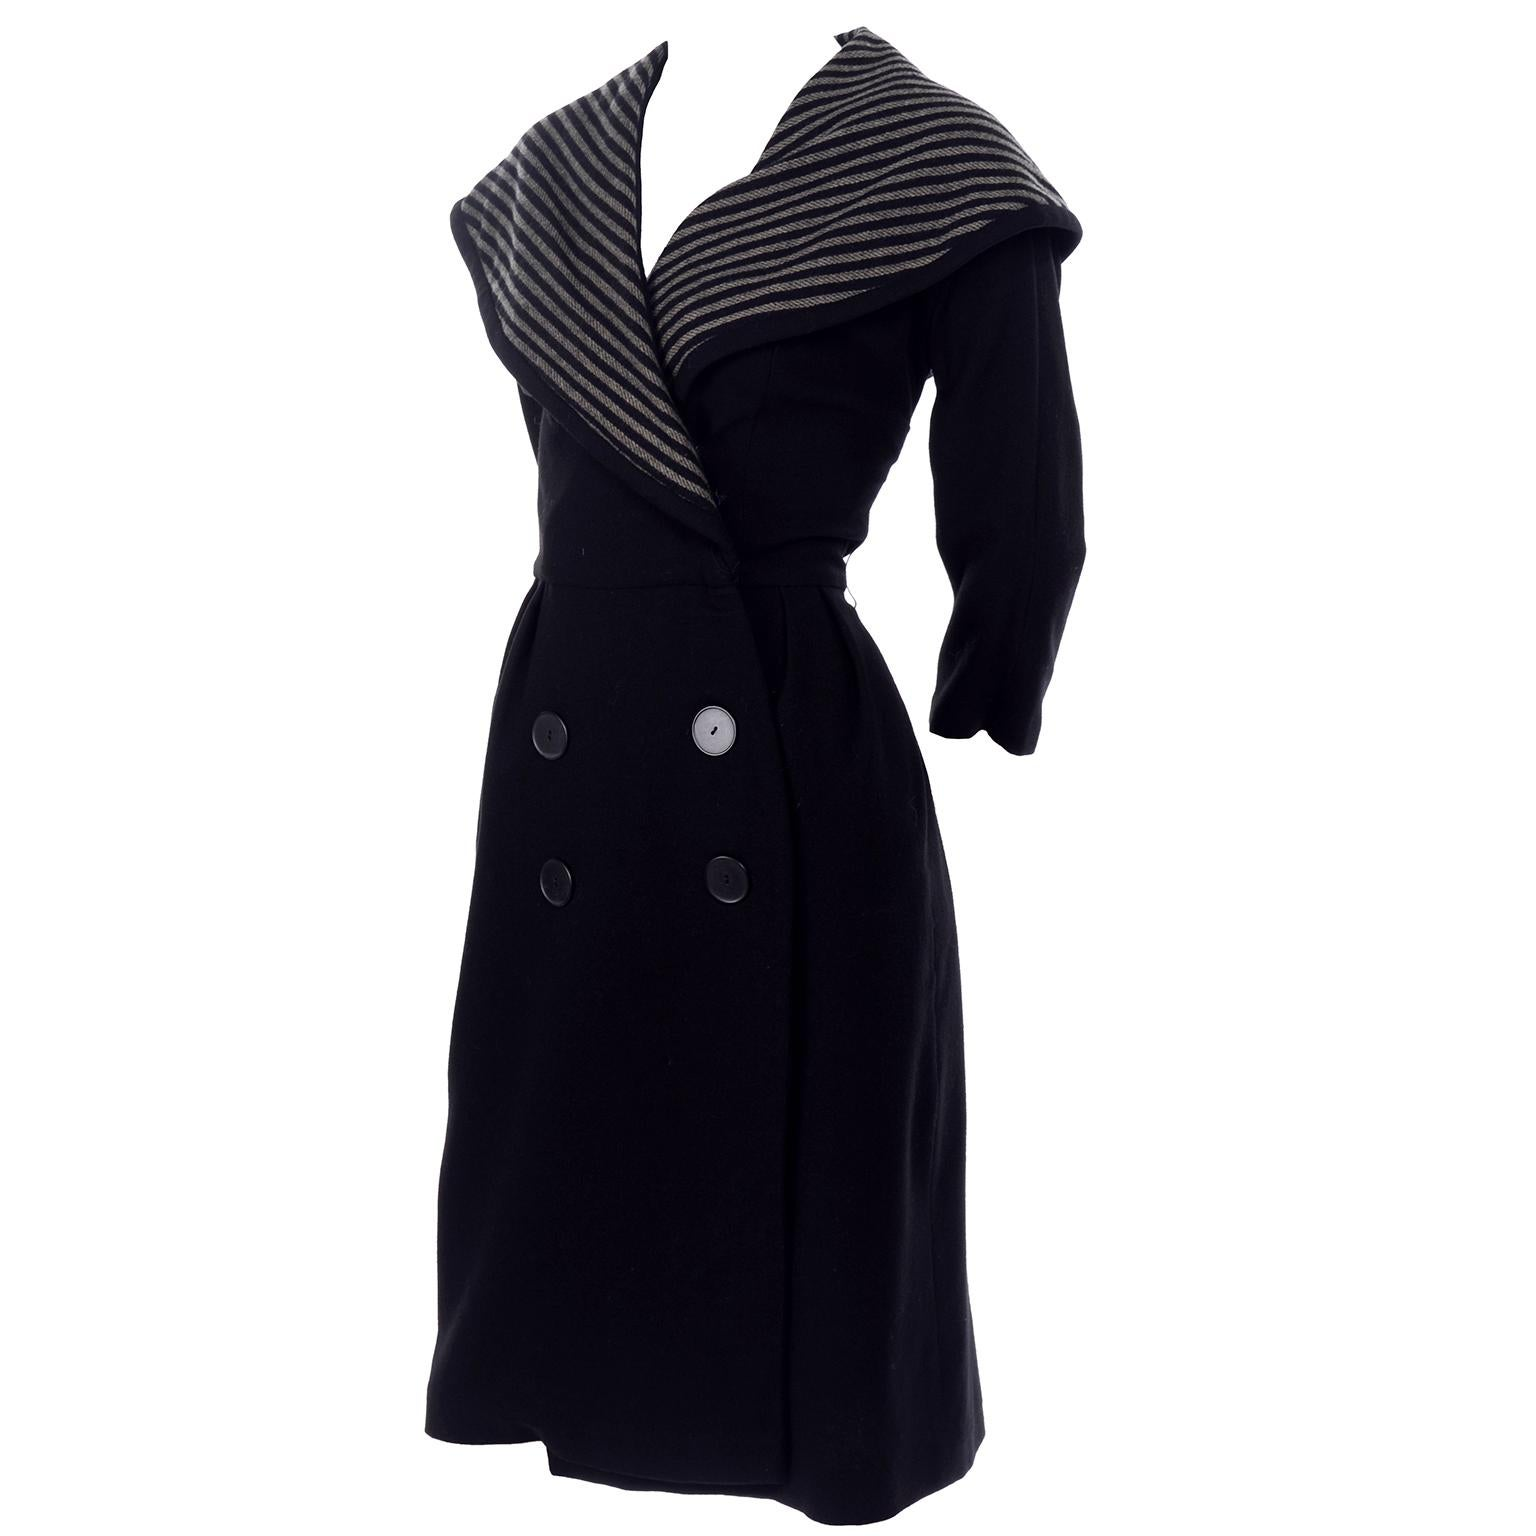 Vintage Edwardian 1910s Black and Gray Wool Walking Coat Jacket With Wide Collar